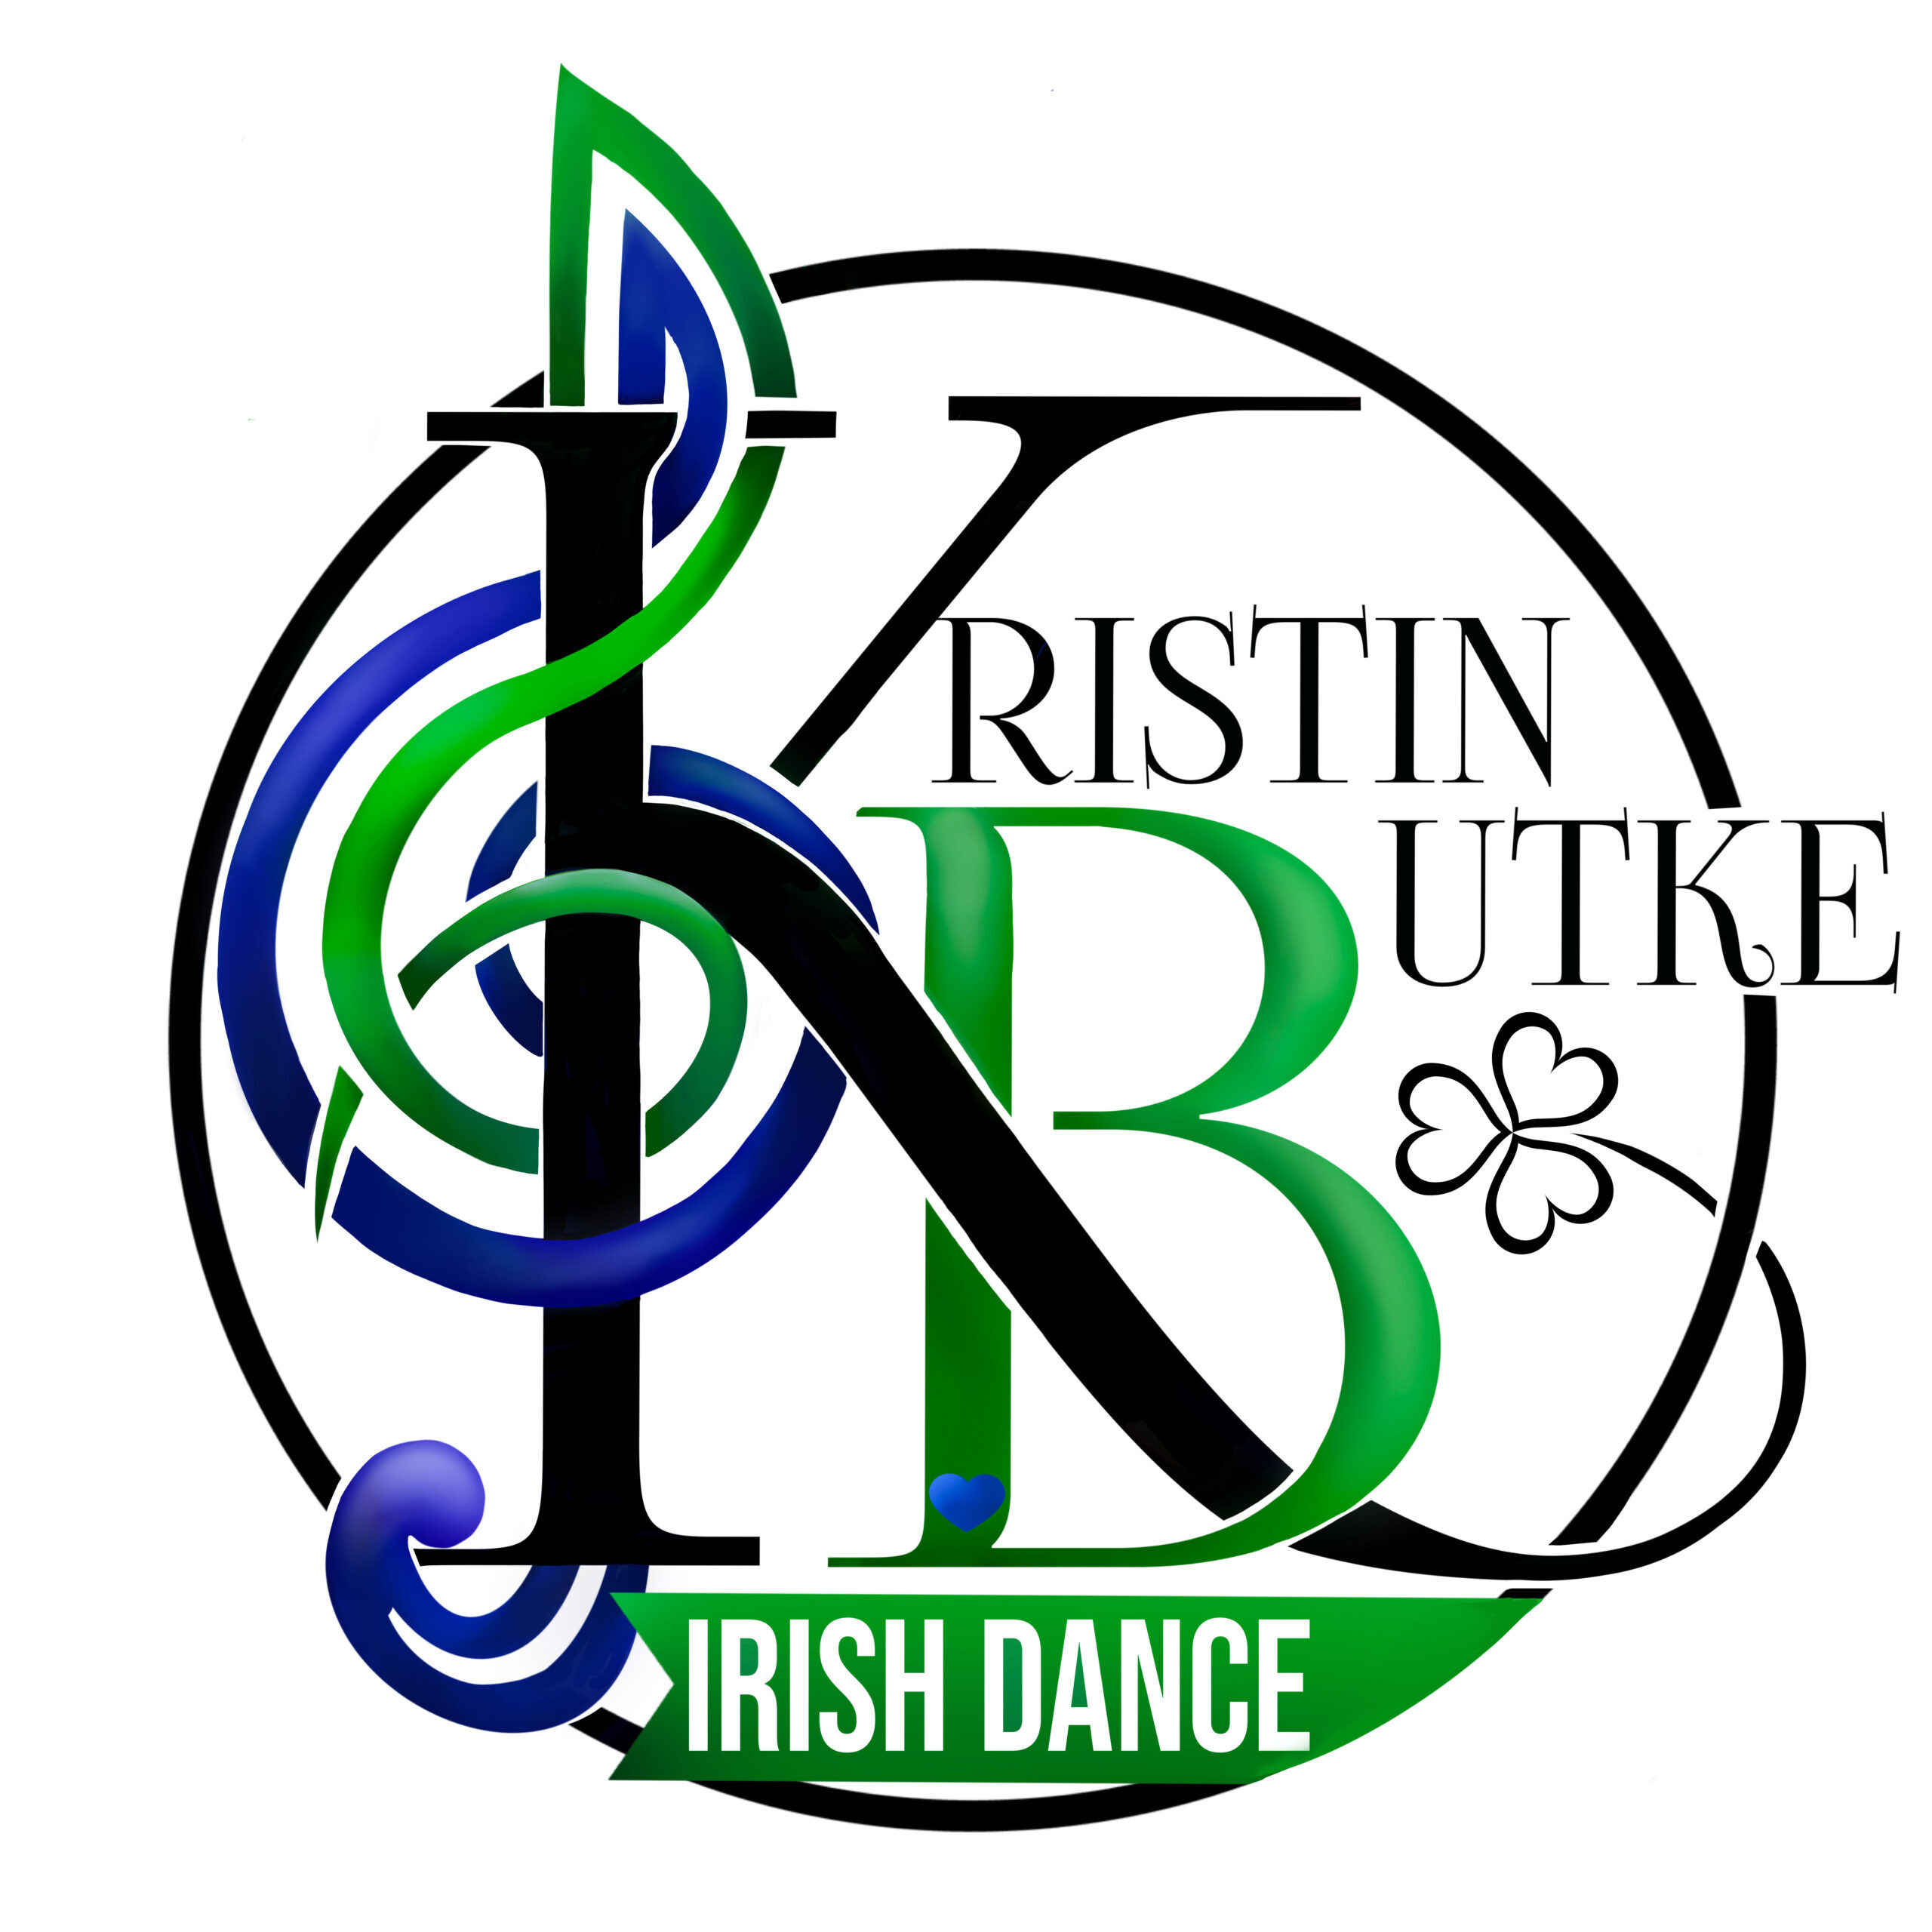 Kristin Butke Irish Dance